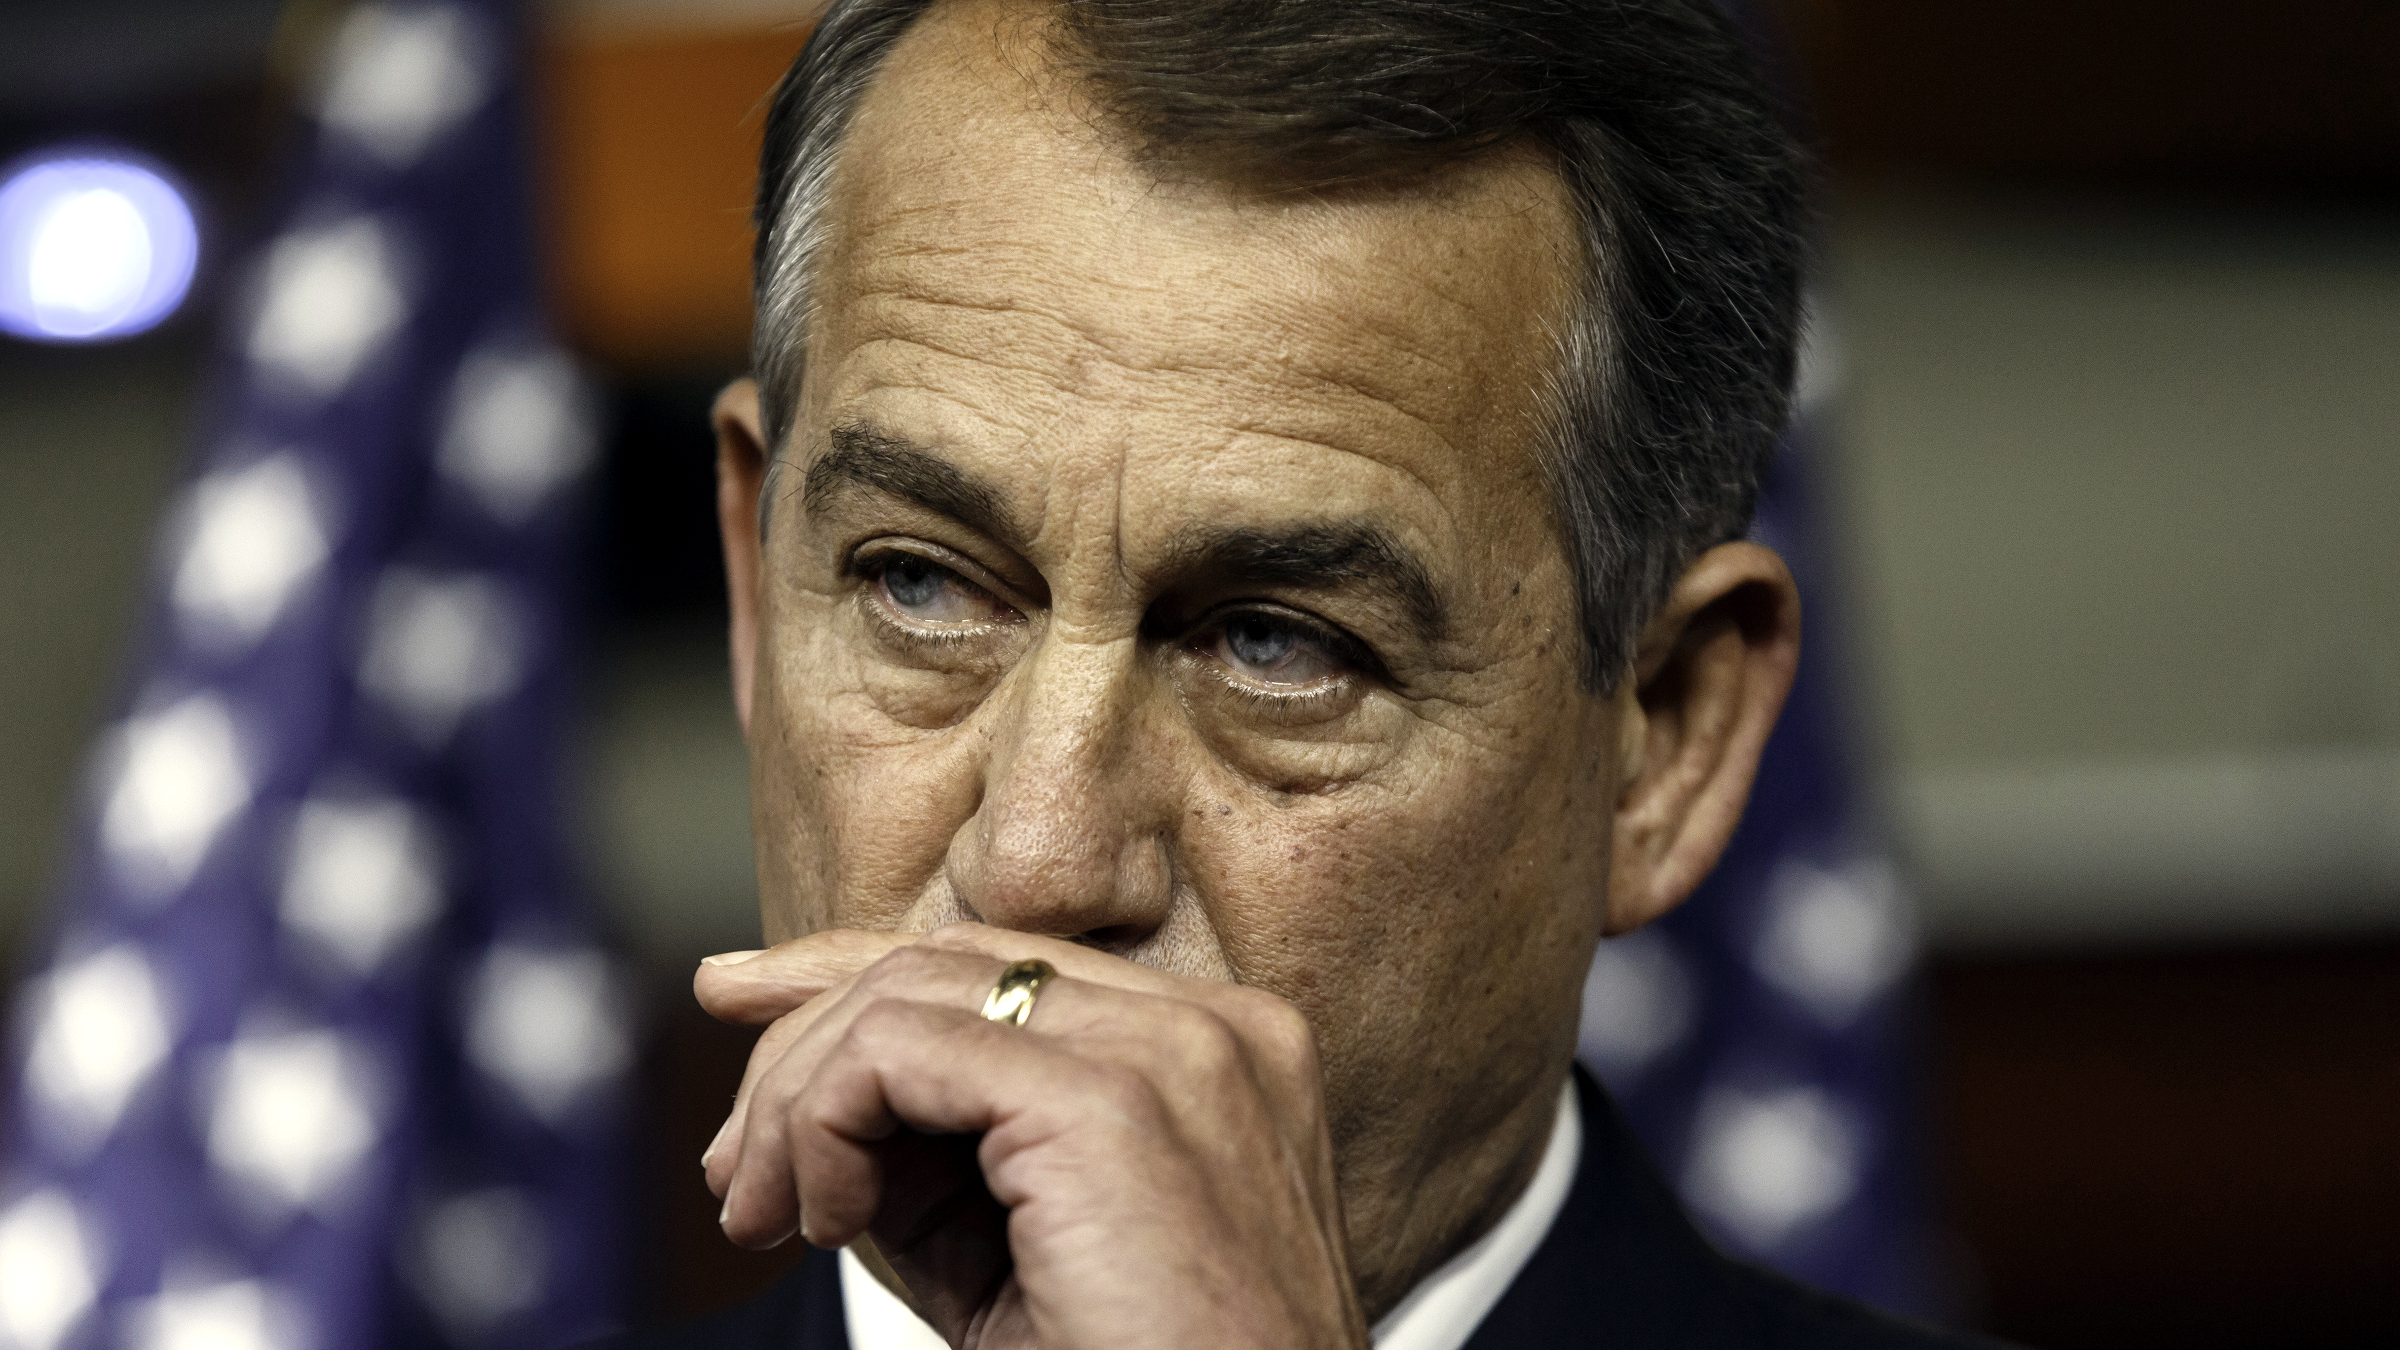 House Speaker John Boehner of Ohio, reflects on the stunning primary defeat of House Majority Leader Eric Cantor of Va., Thursday, June 12, 2014, during a news conference on Capitol Hill in Washington. Cantor announced Wednesday that he will resign his leadership post at the end of next month, clearing the way for a potentially disruptive Republican shake-up just before midterm elections with control of Congress at stake. Boehner told reporters he's declining to take sides in the contest to replace Cantor as House majority leader.